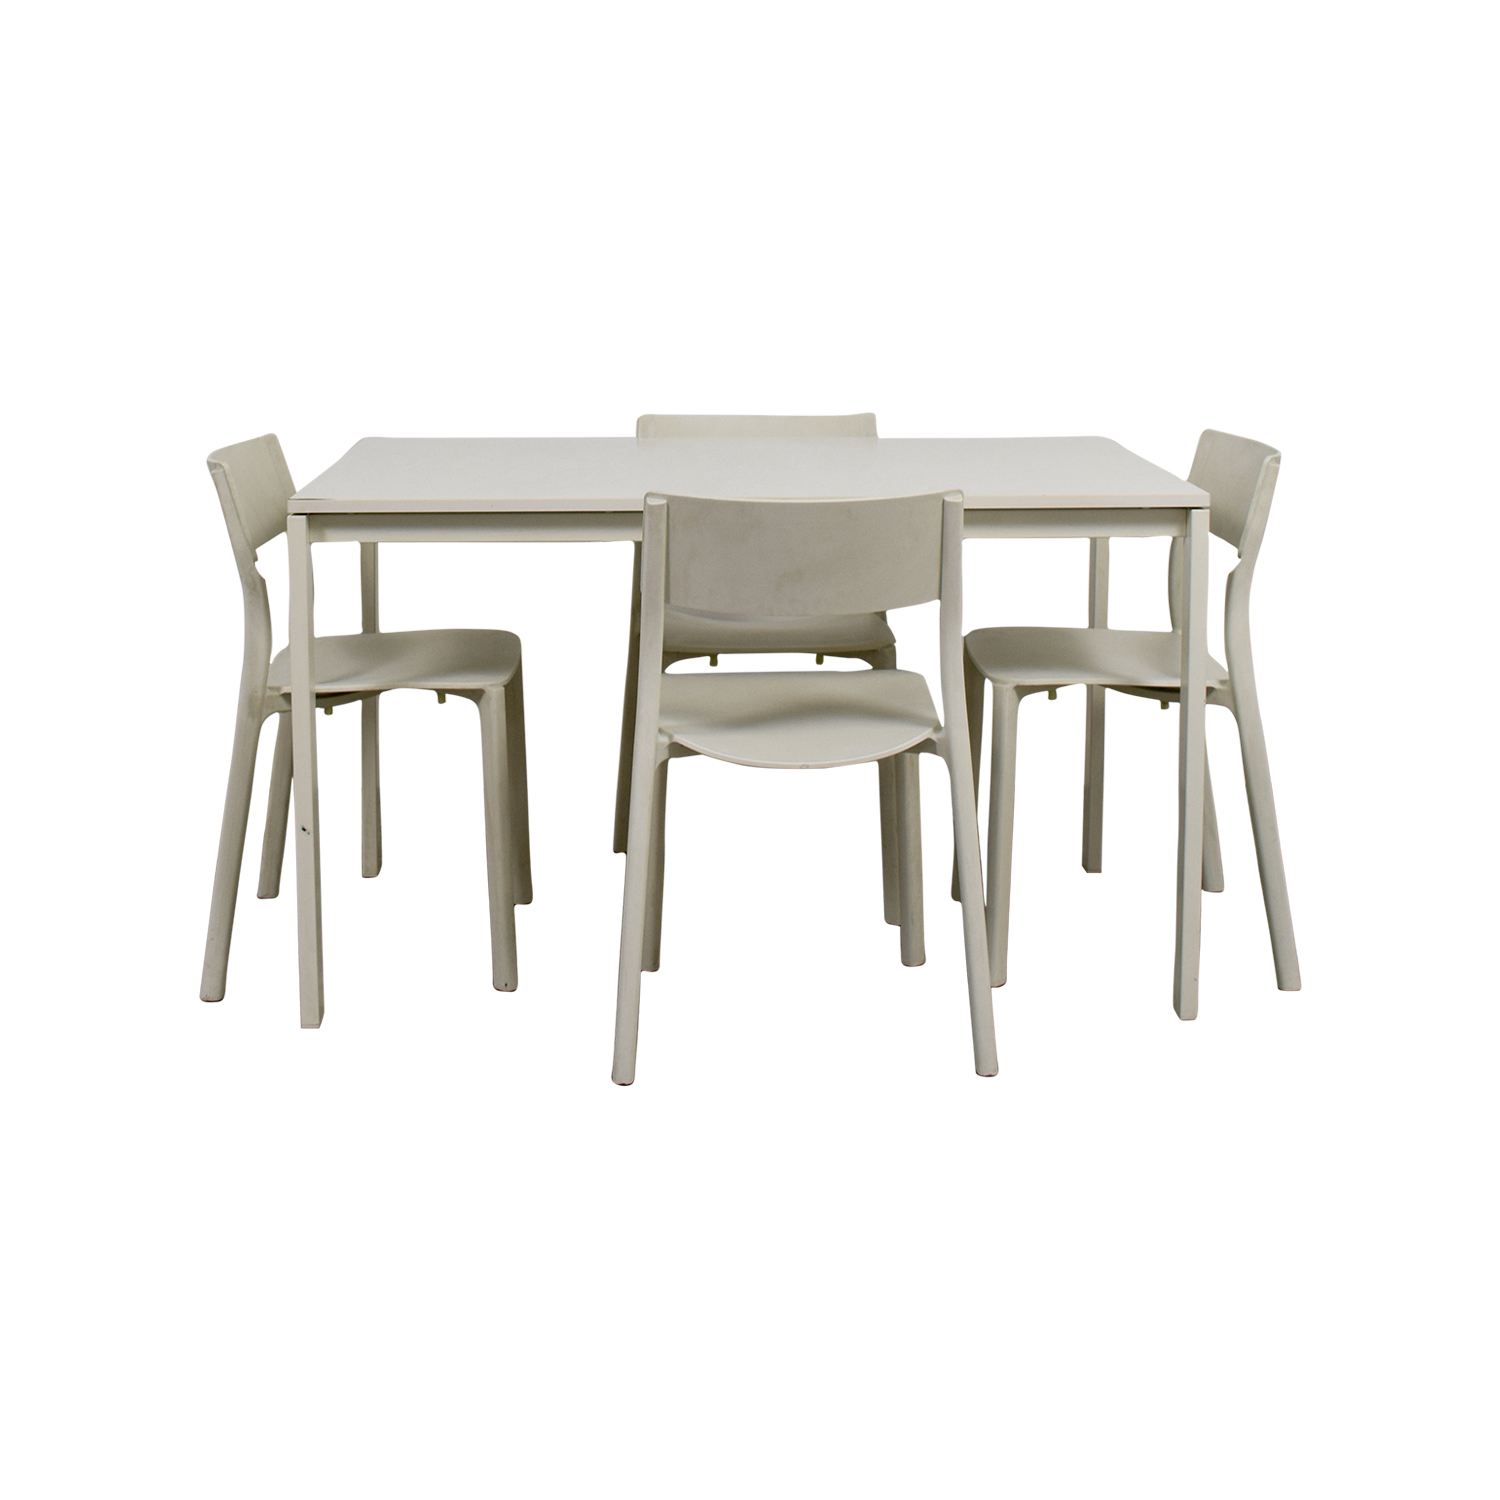 IKEA White Kitchen Table and Chairs sale